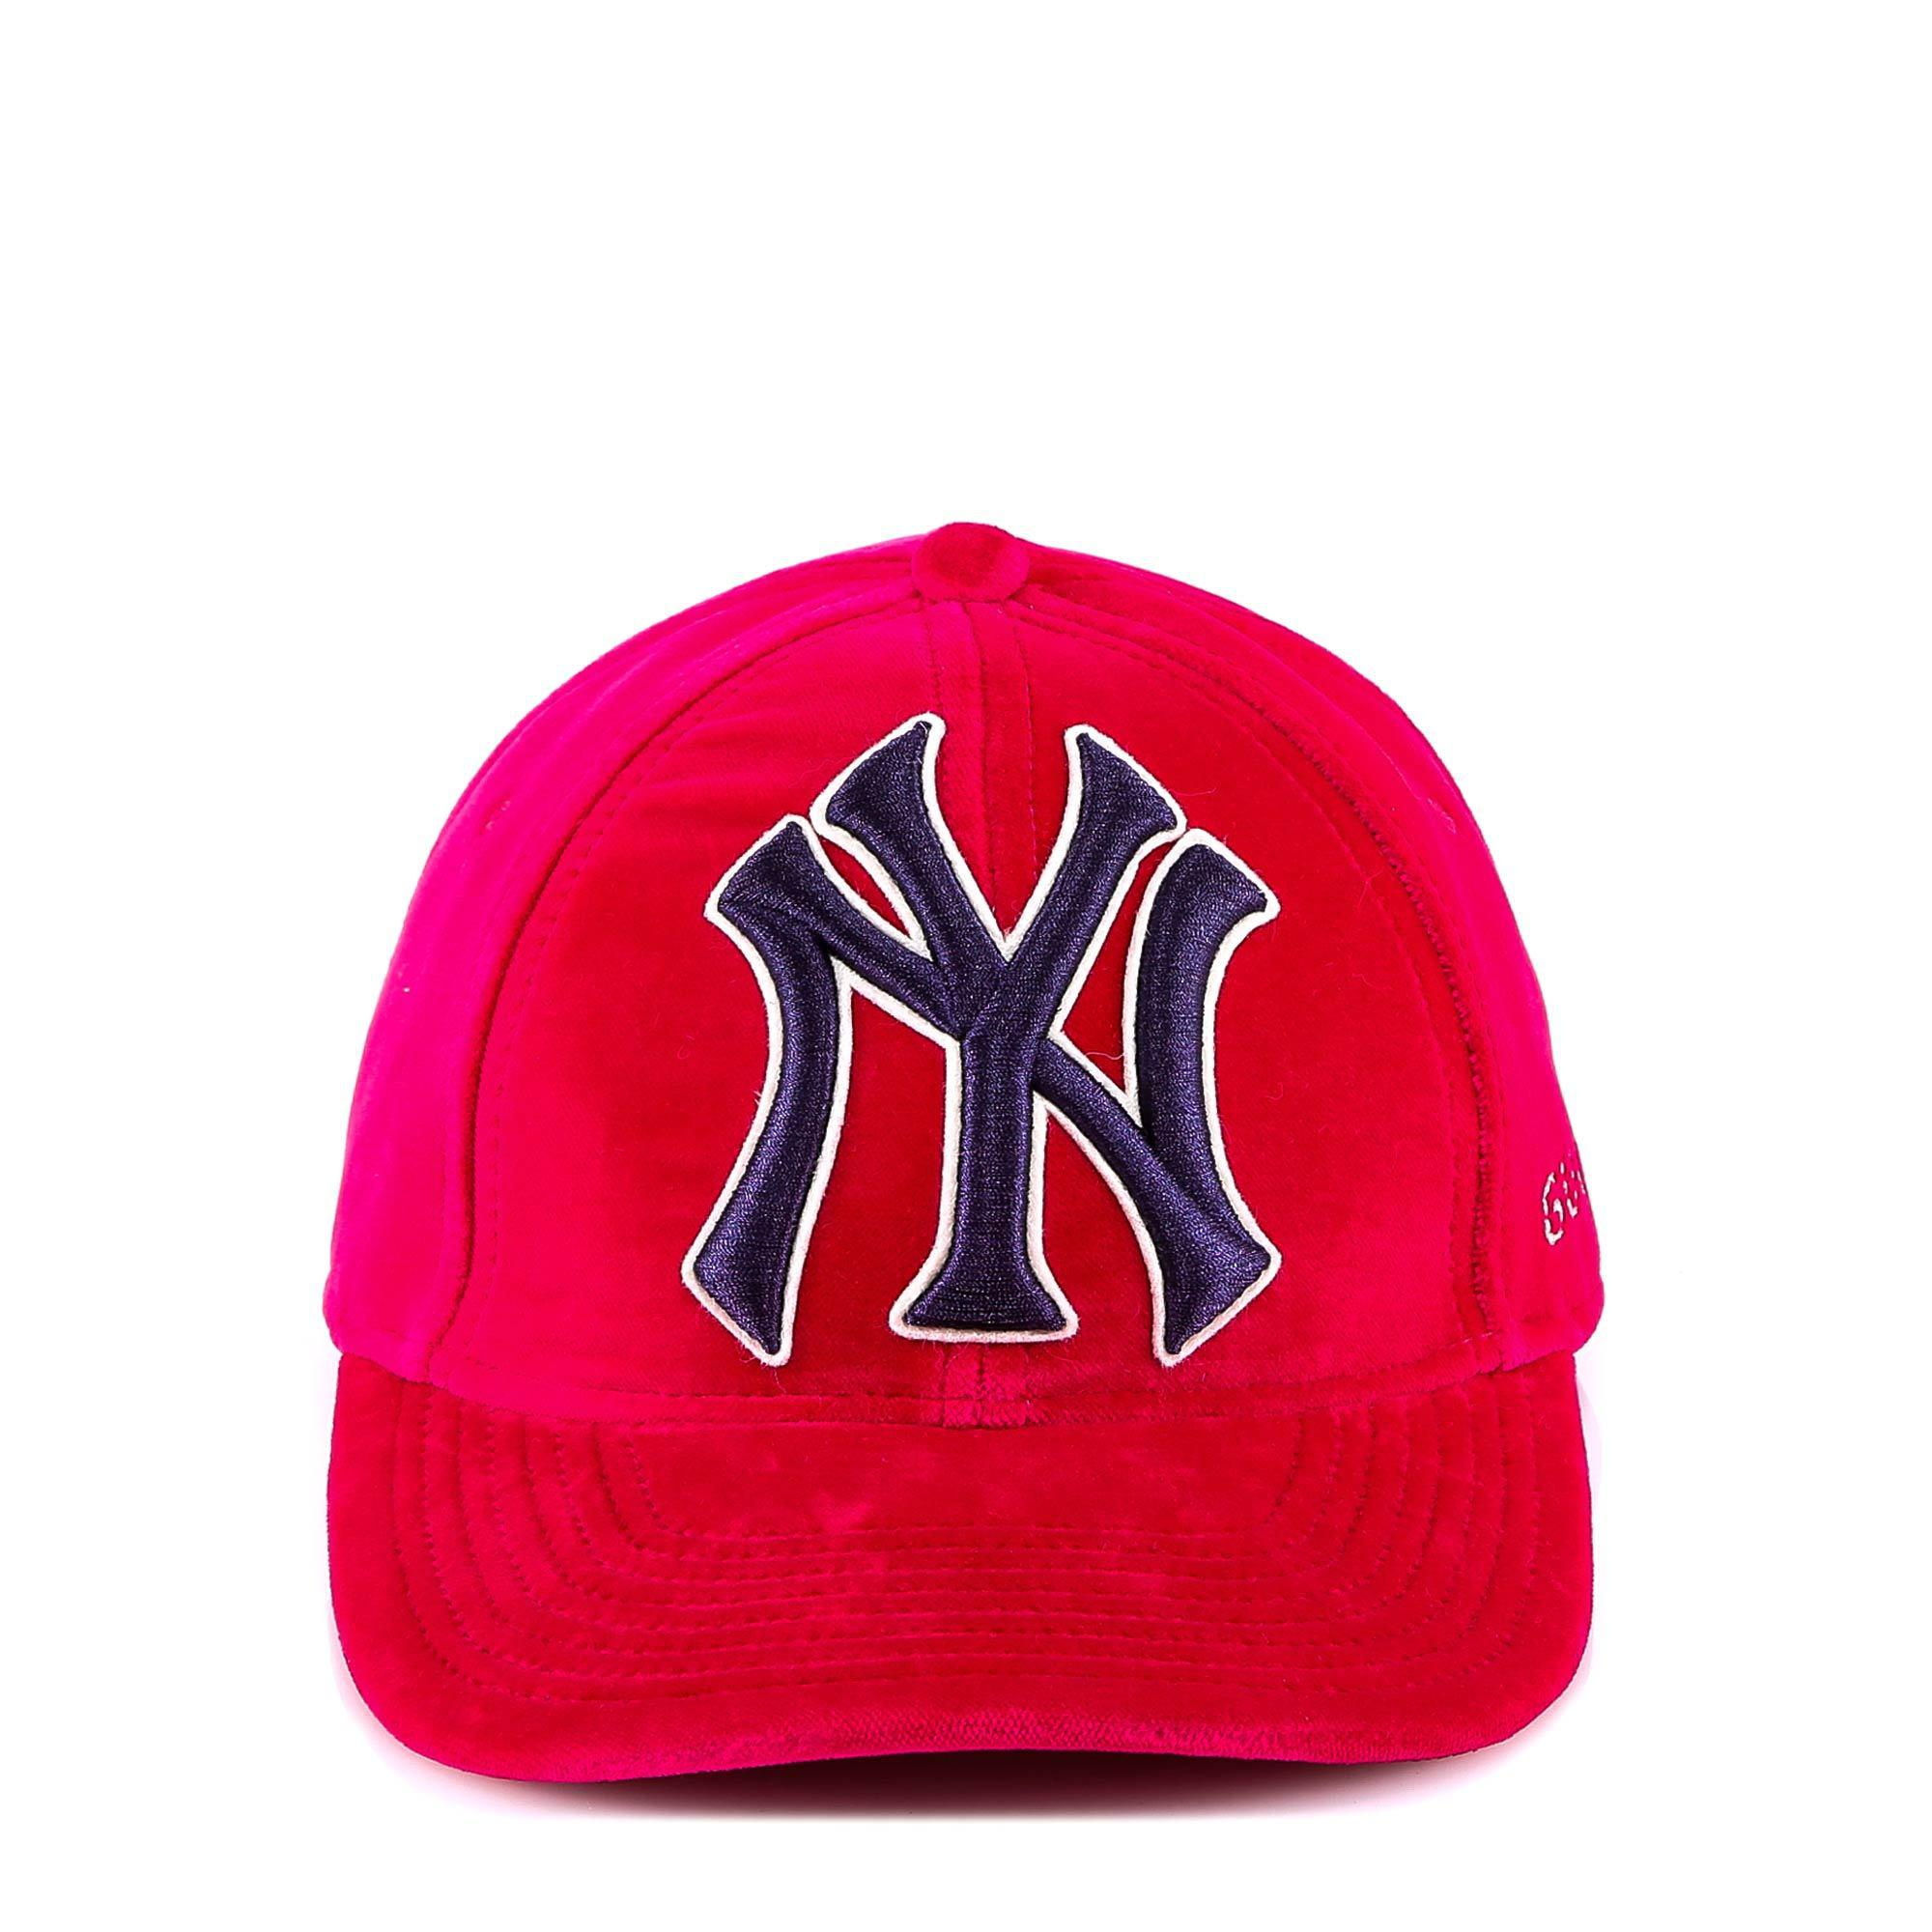 050cd44b0f151 Gucci New York Yankees Embroidered Cap in Pink for Men - Lyst